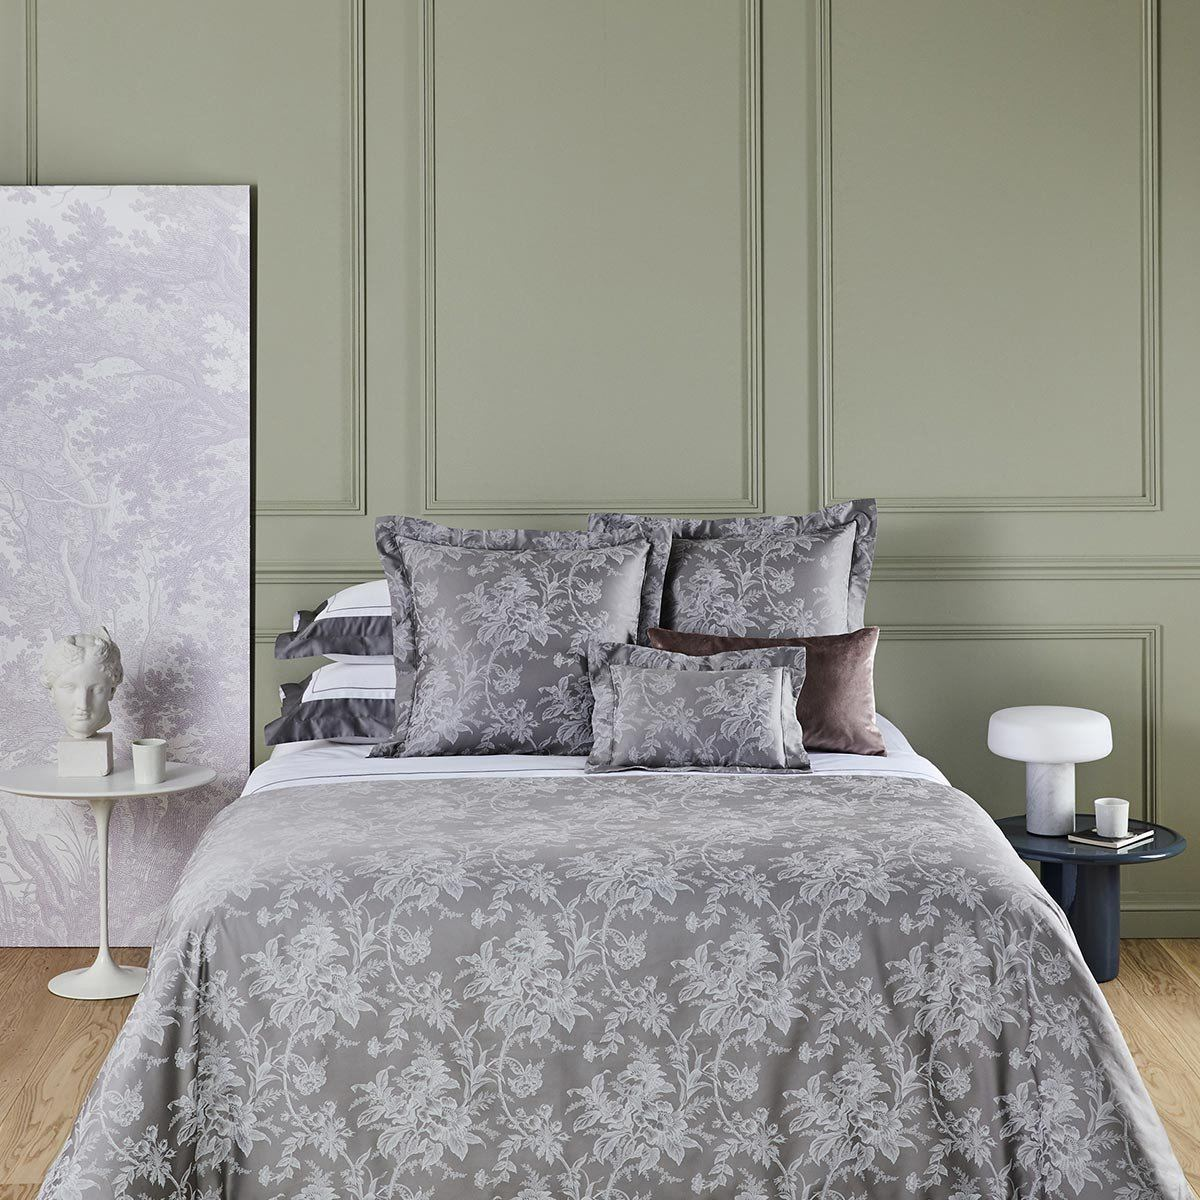 Aurore Platine Bedding by Yves Delorme